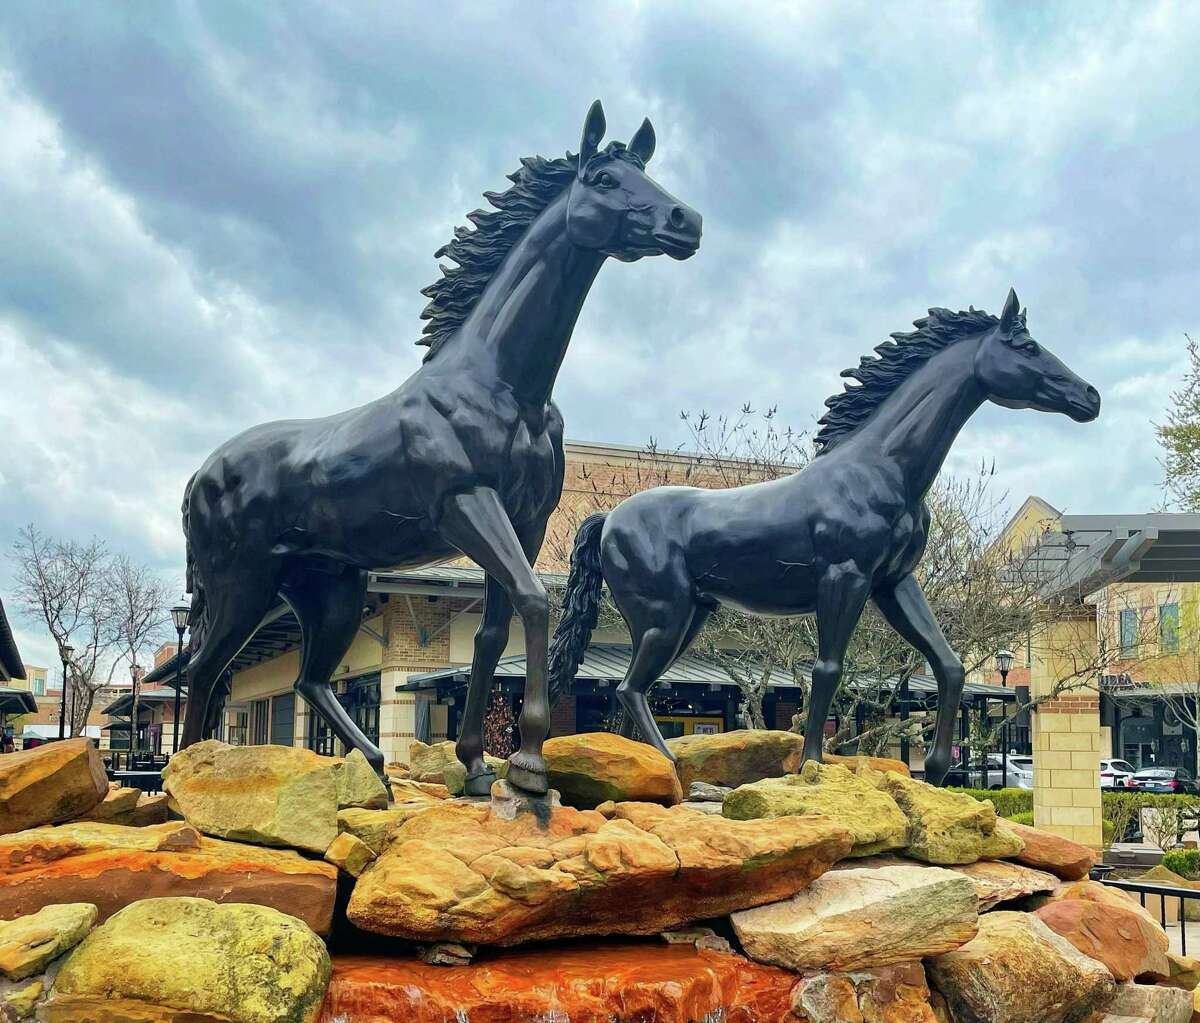 The LaCenterra horse fountain on March 22, 2021.